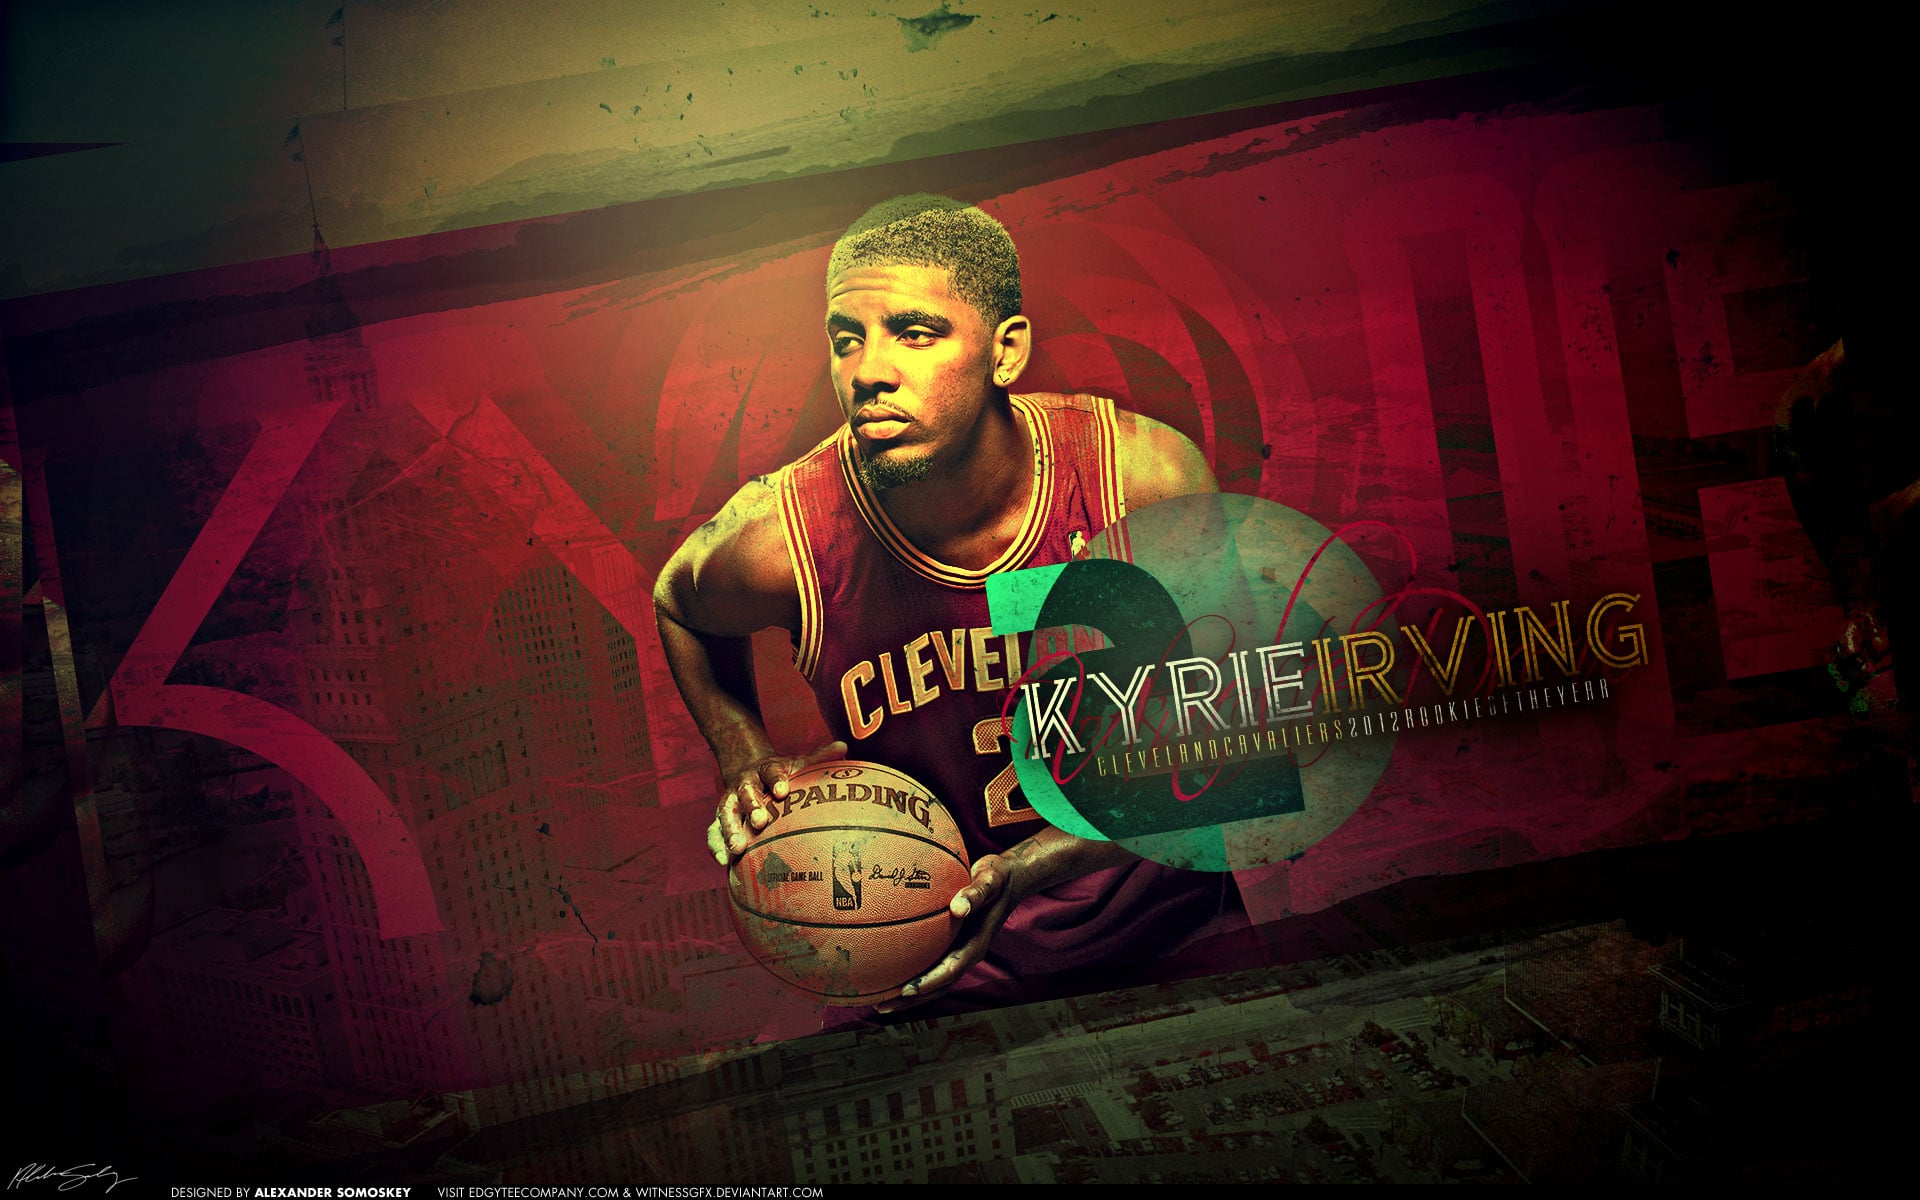 Hd wallpaper kyrie irving - Kyrie Irving Hd Wallpapers